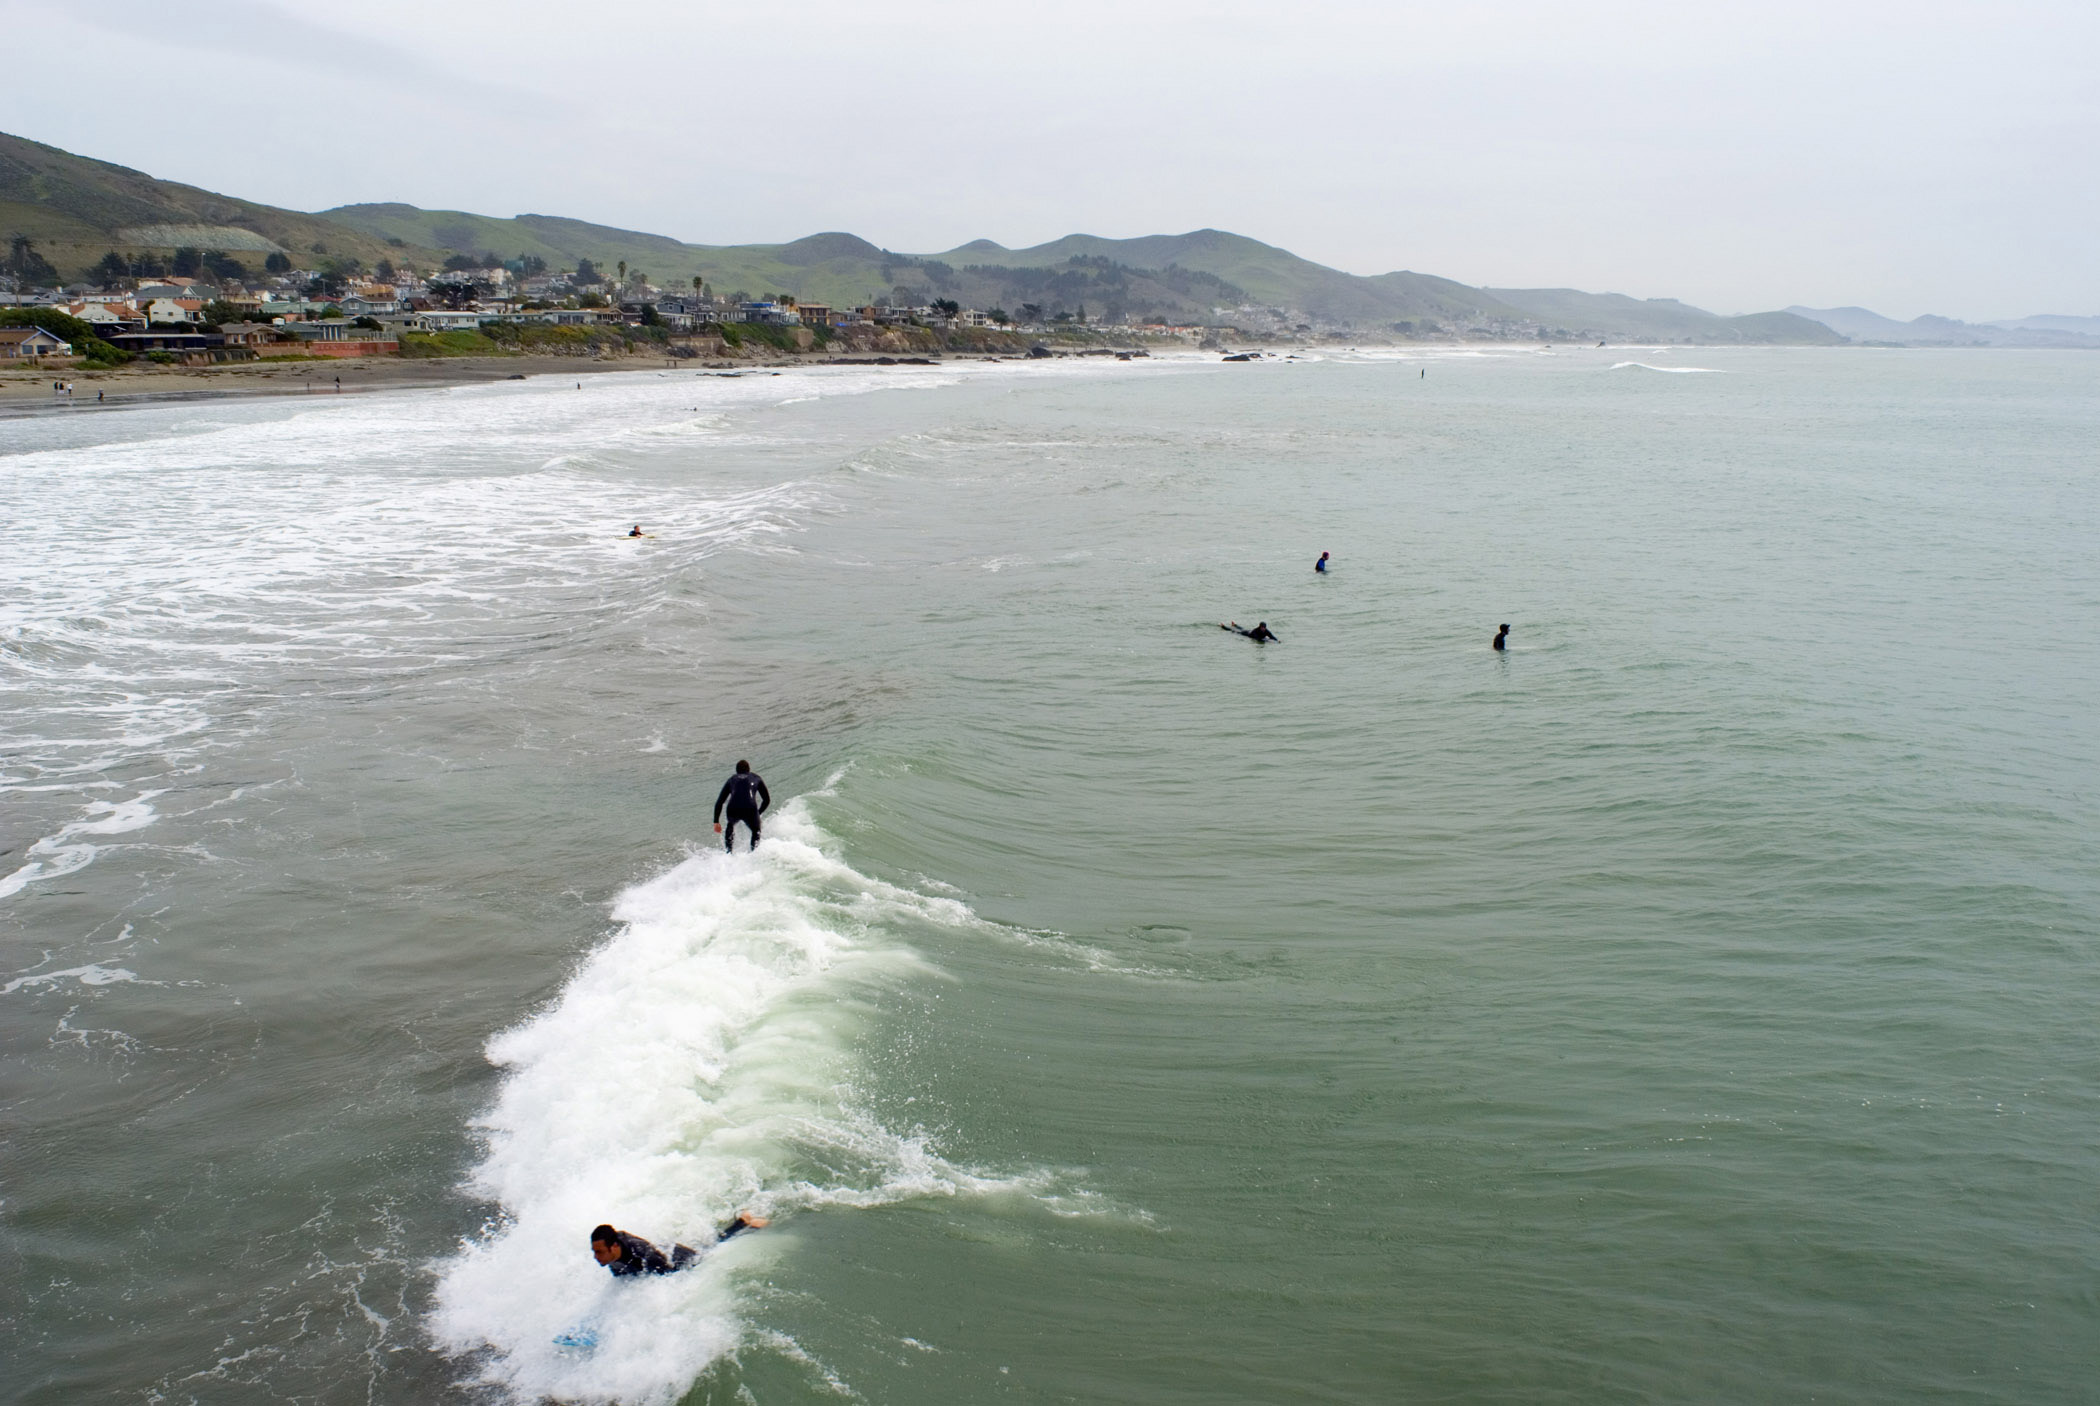 Overview of Surfers catcing the waves at Cayucos State Beach, California, USA